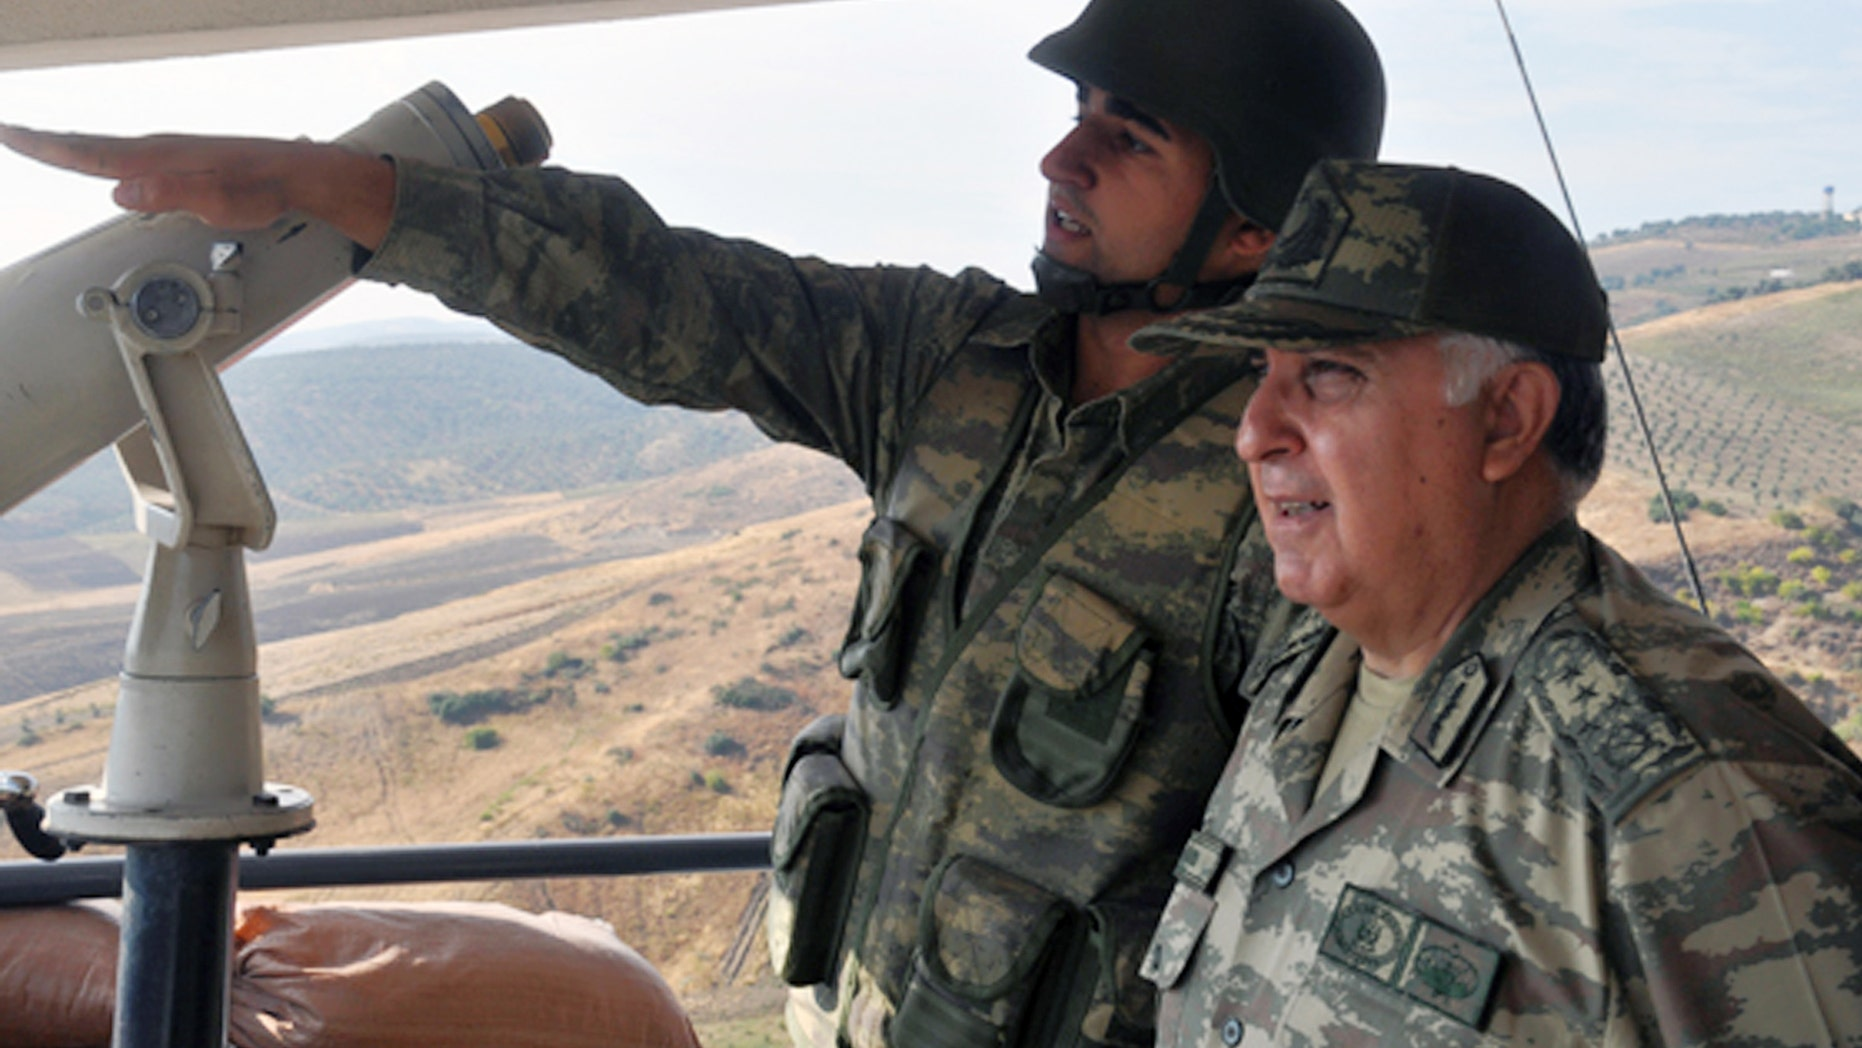 Oct. 9, 2012: Turkish Chief of Staff Gen. Necdet Ozel, right, listens to a commander during his tour of the military along the border with Syria in Hatay, Turkey.